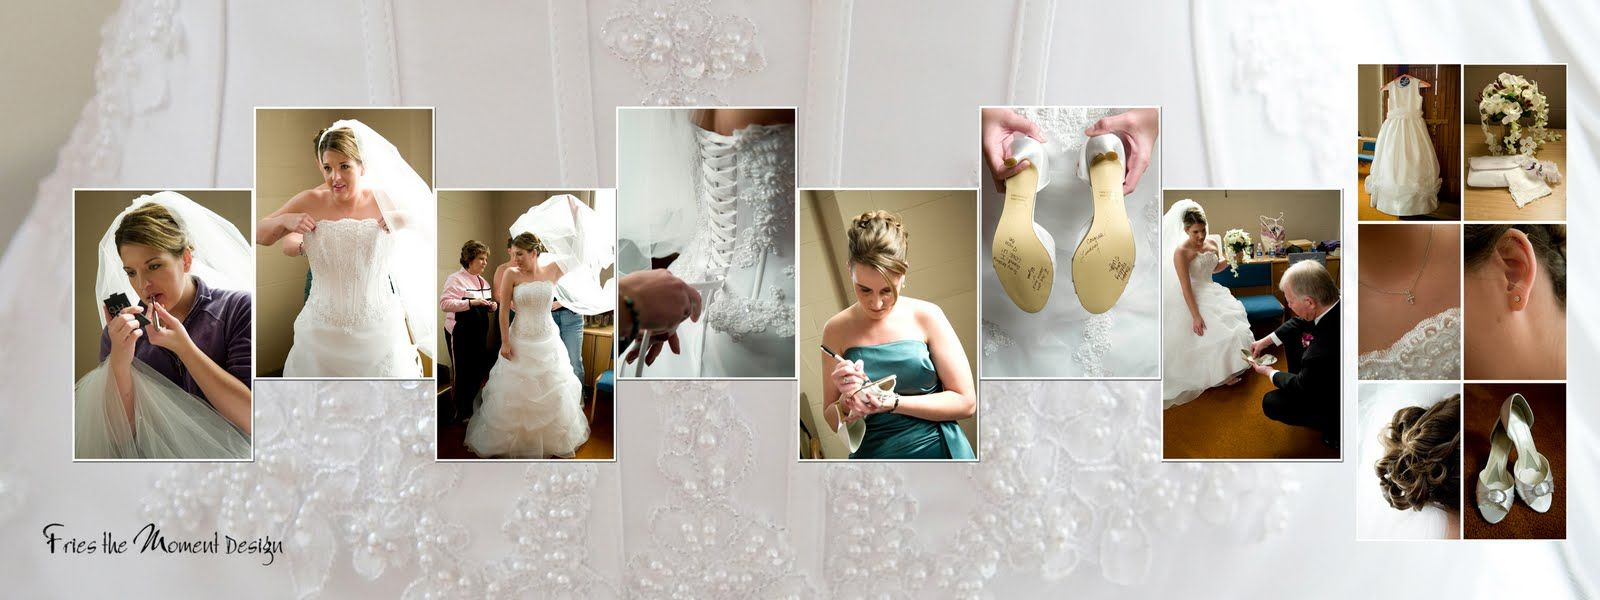 Using the dress as a background | Wedding Album | Pinterest